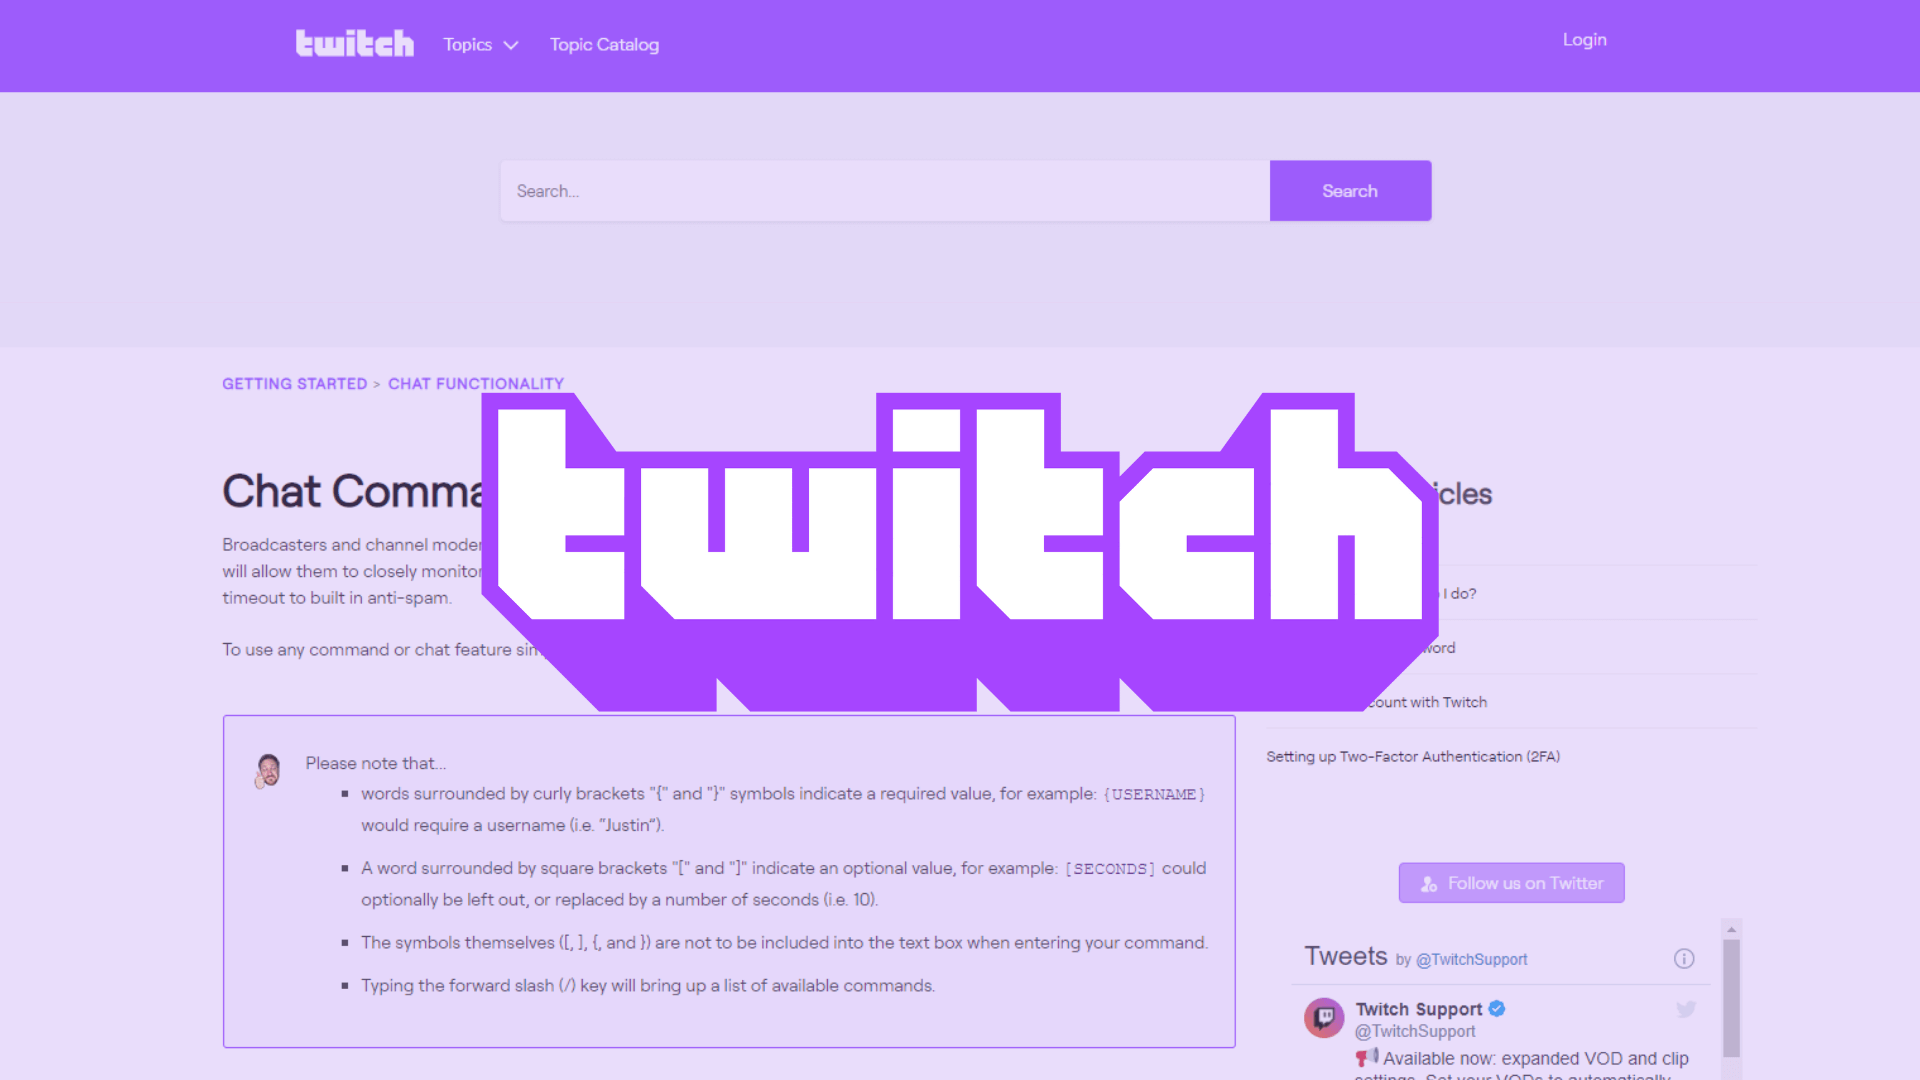 Illustration for Twitch Mod Commands